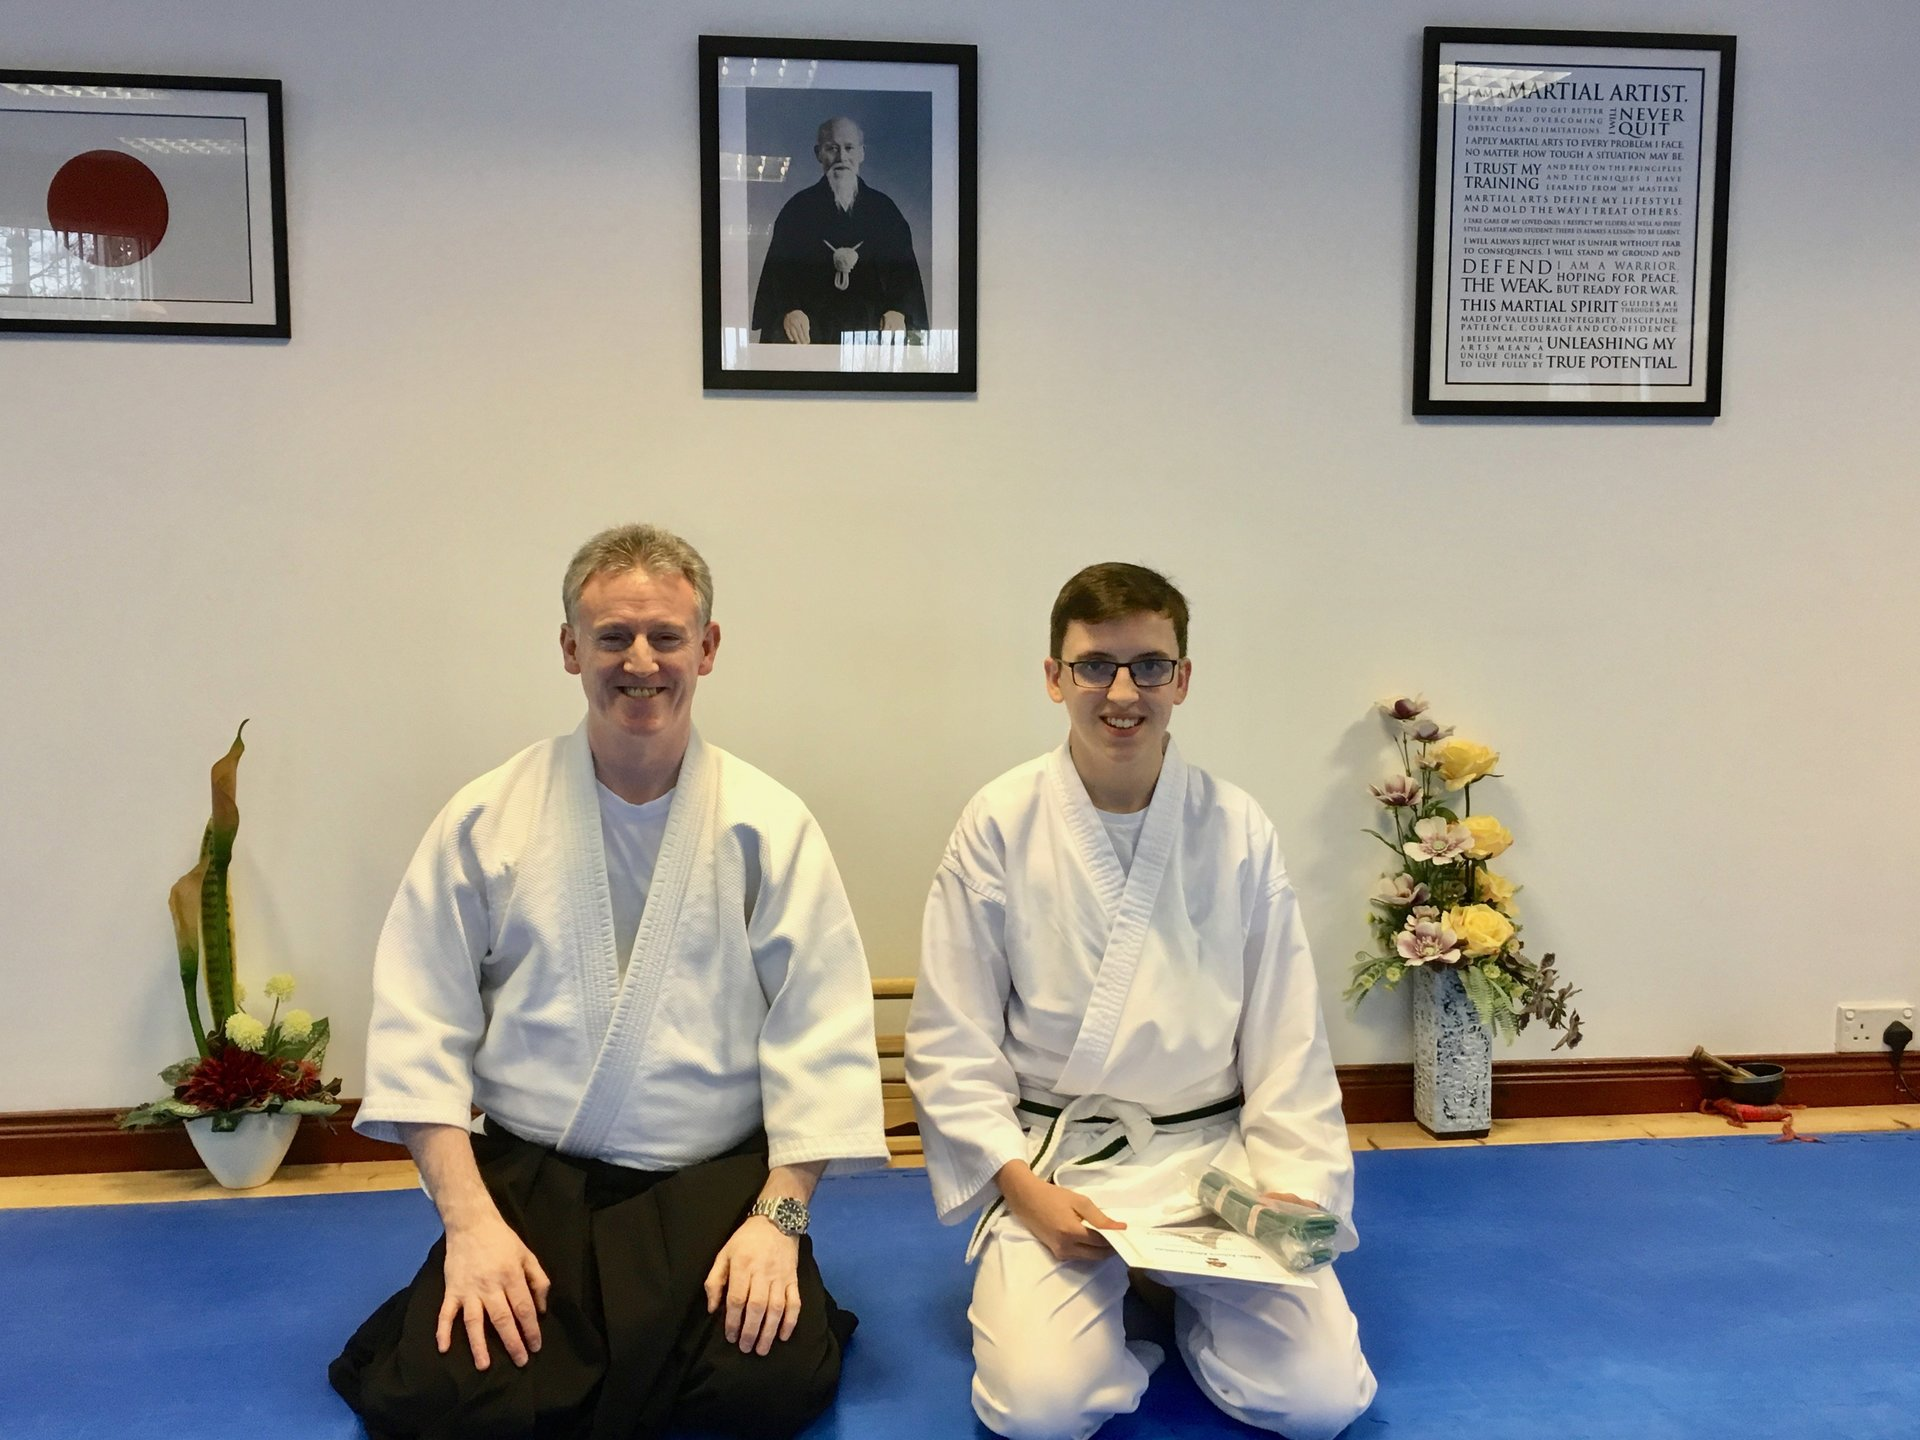 Joshua McGreevy receiving his certification for passing his Aikido 10th kyu green belt grading on 18/11/2017 at Martin Acton's Aikido Institute.